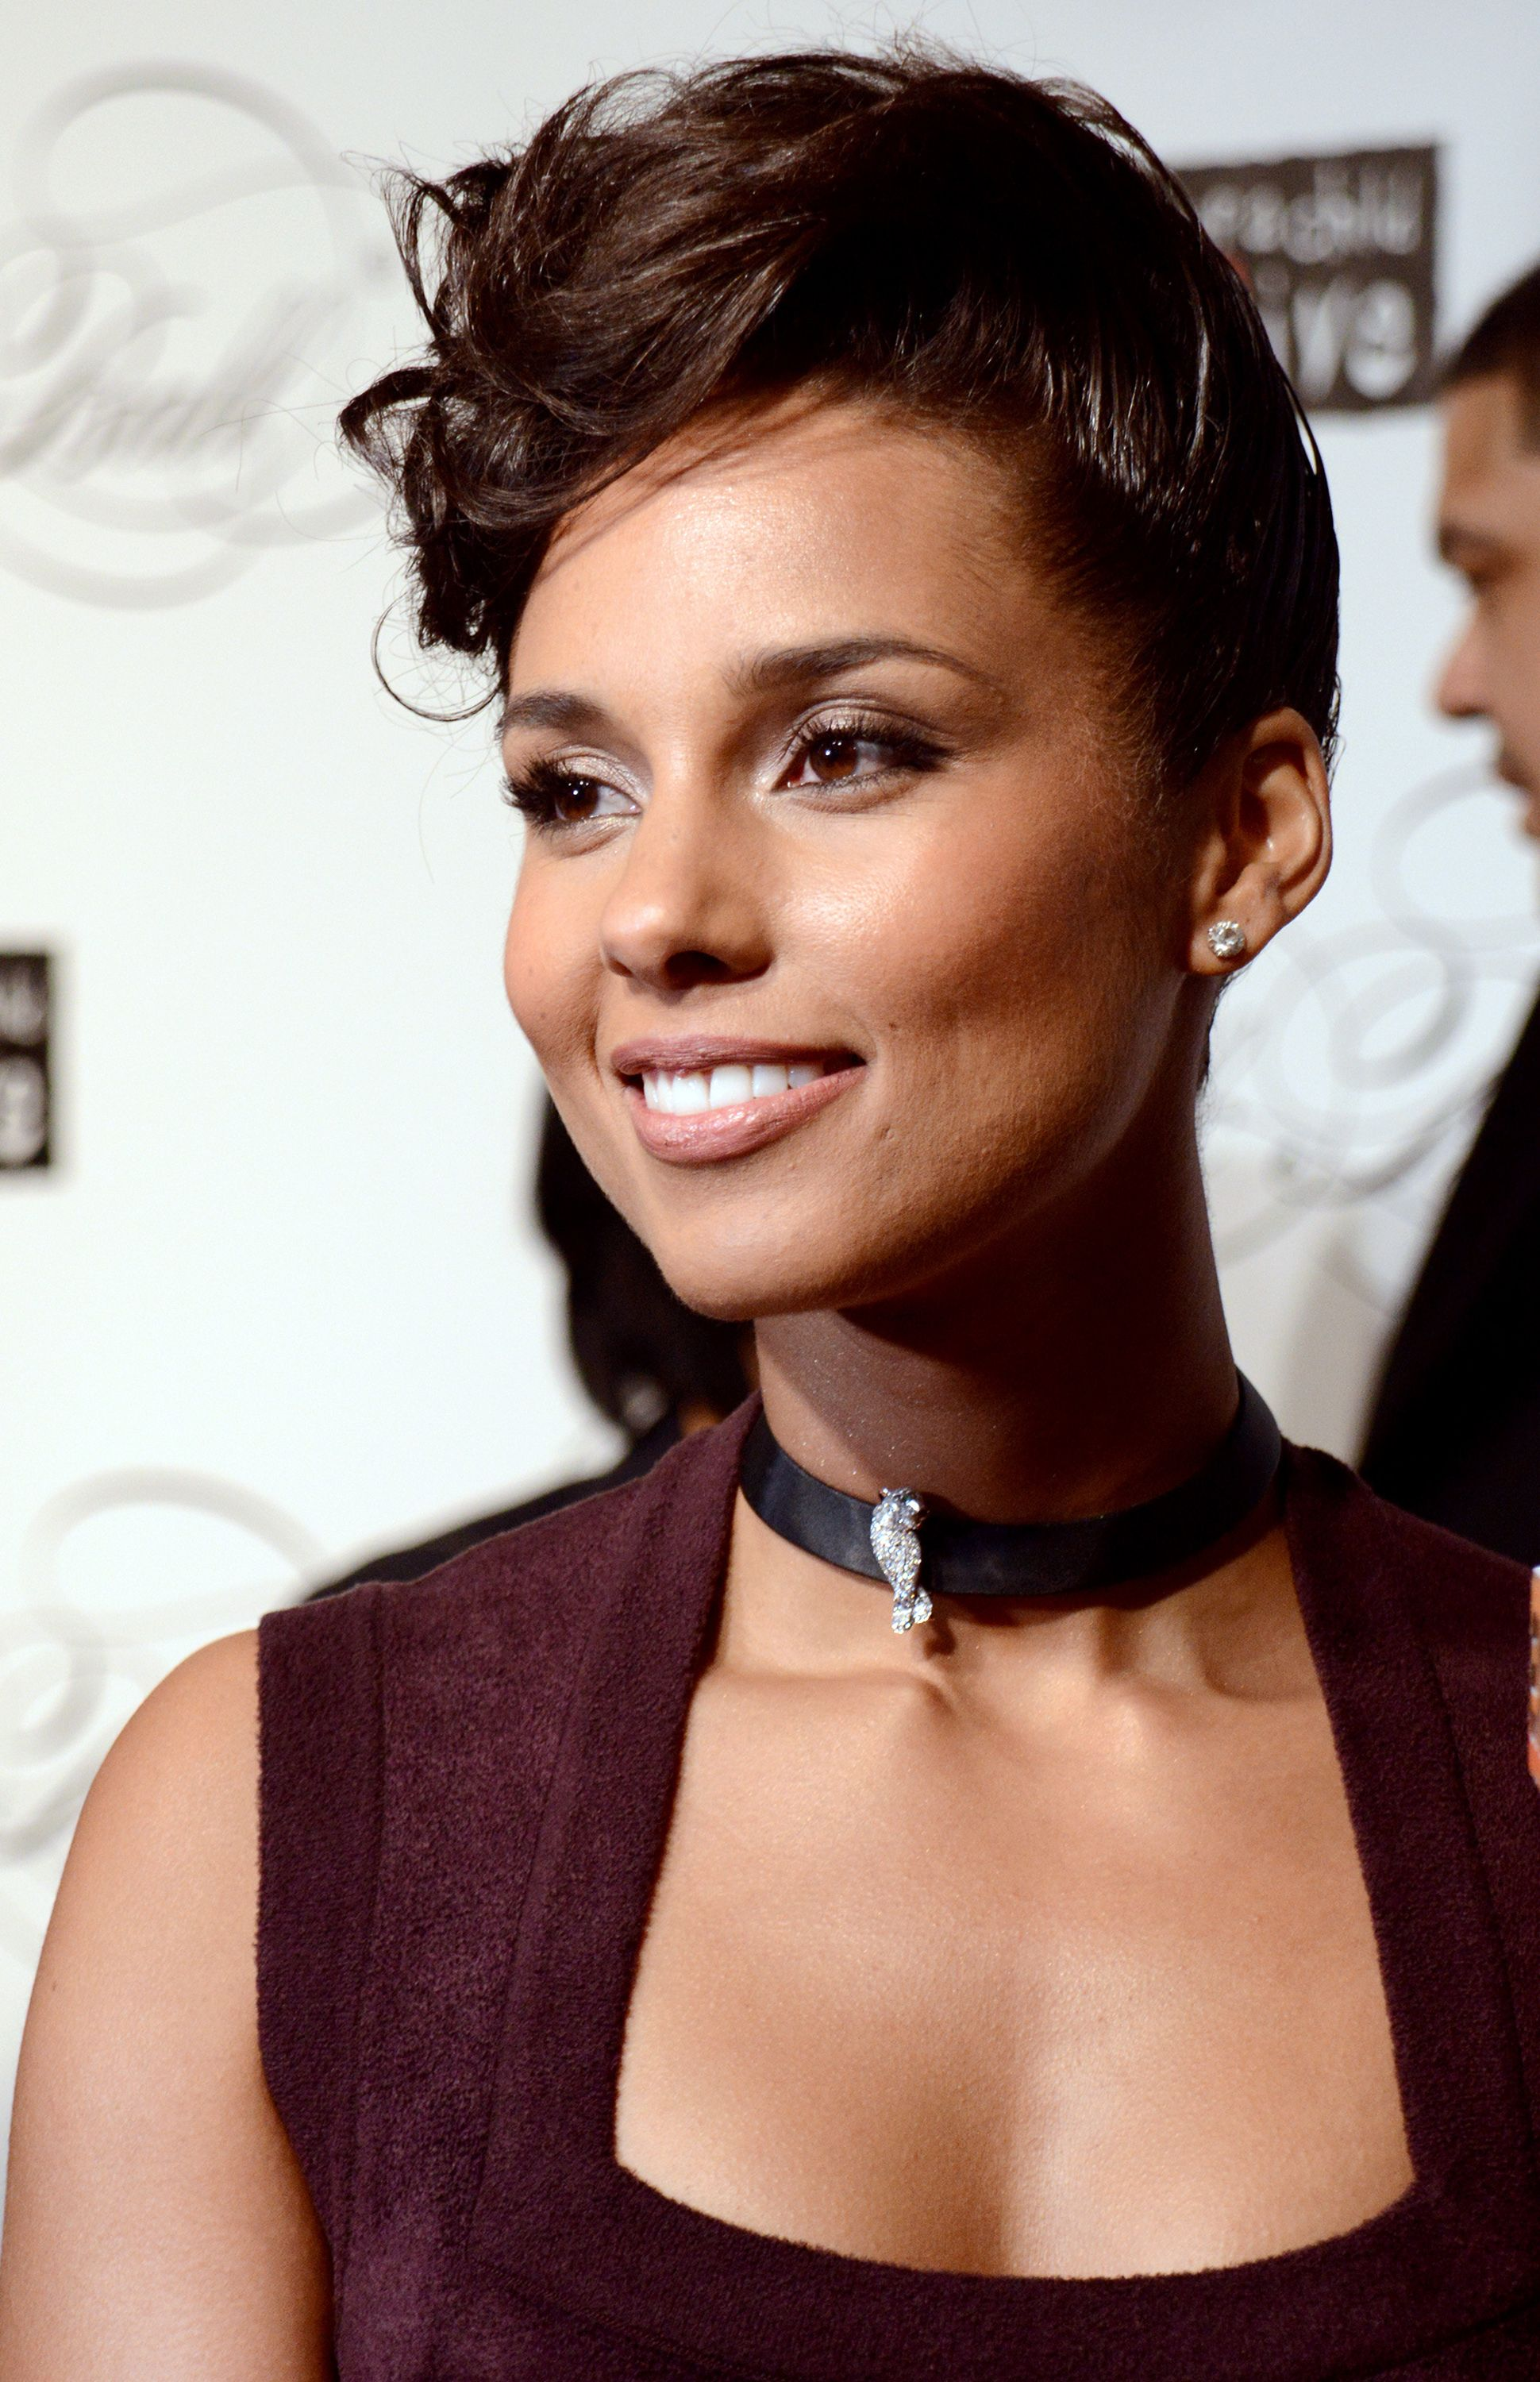 Sensational 1000 Images About Alicia Keys On Pinterest Alicia Keys Hair Short Hairstyles Gunalazisus